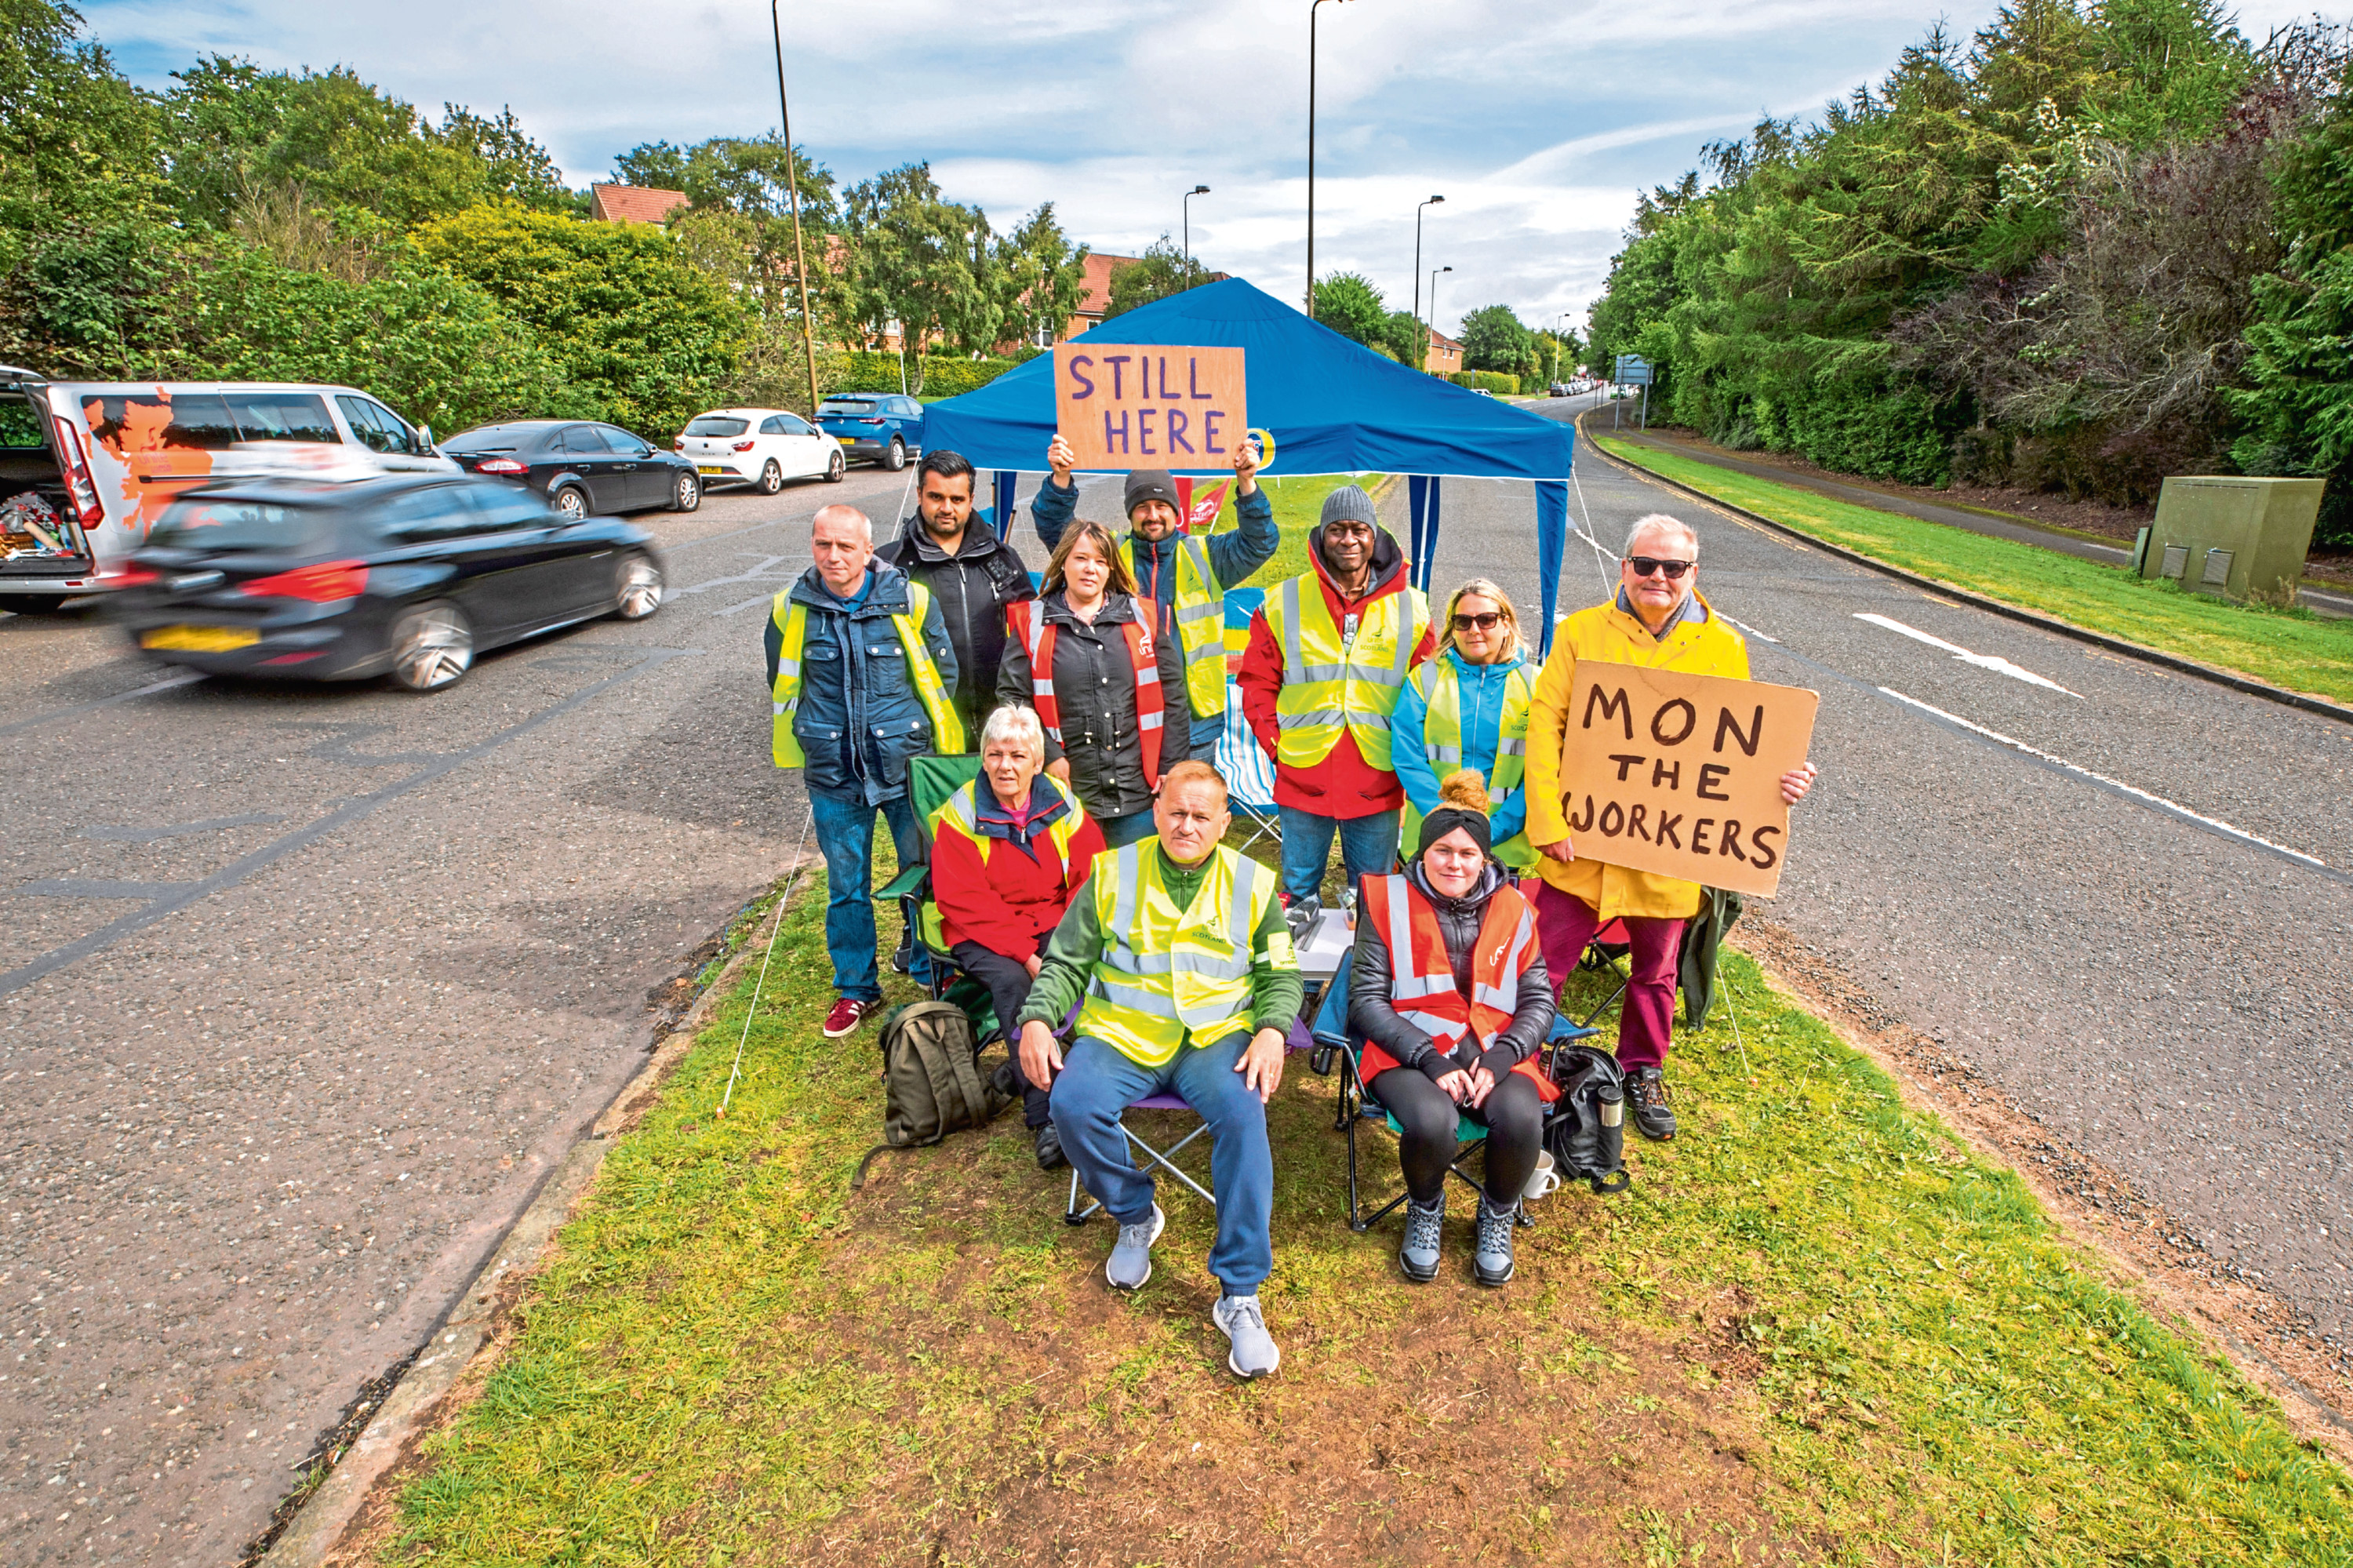 A group of protesters near Ninewells Hospital.